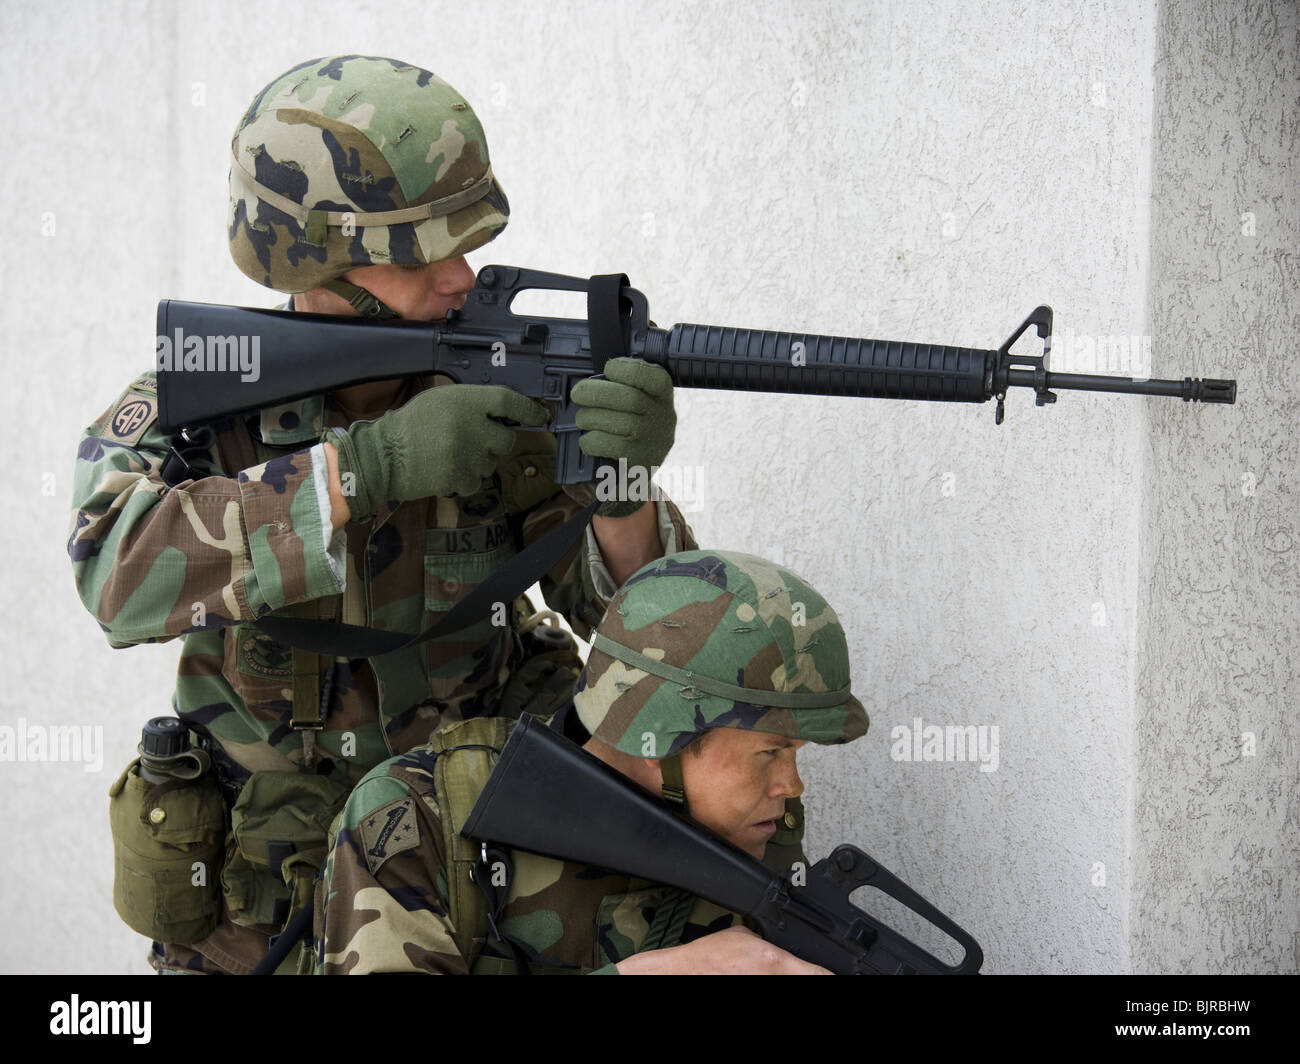 Soldiers aiming weapons - Stock Image